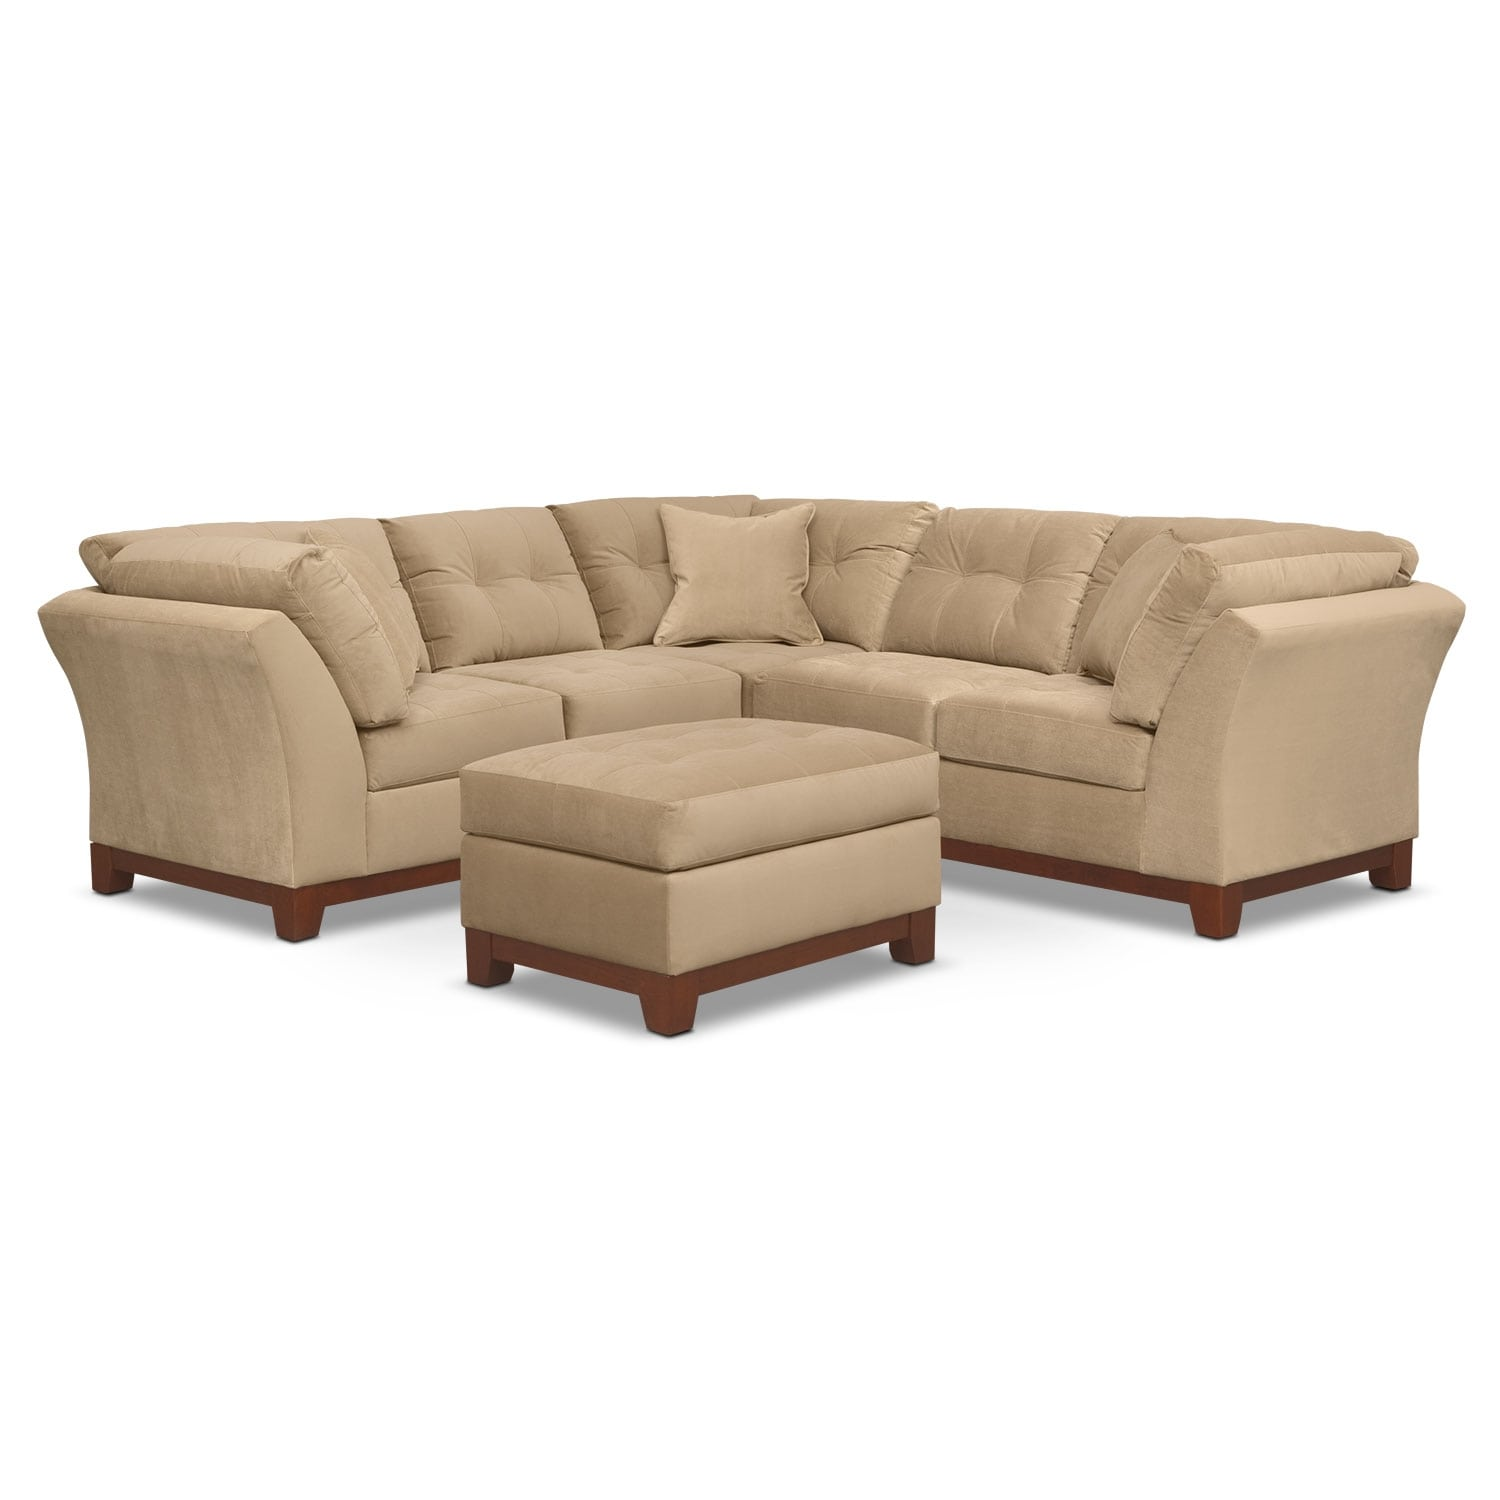 Living Room Furniture - Solace Cocoa II 2 Pc. Sectional (Alternate II Reverse) and Ottoman